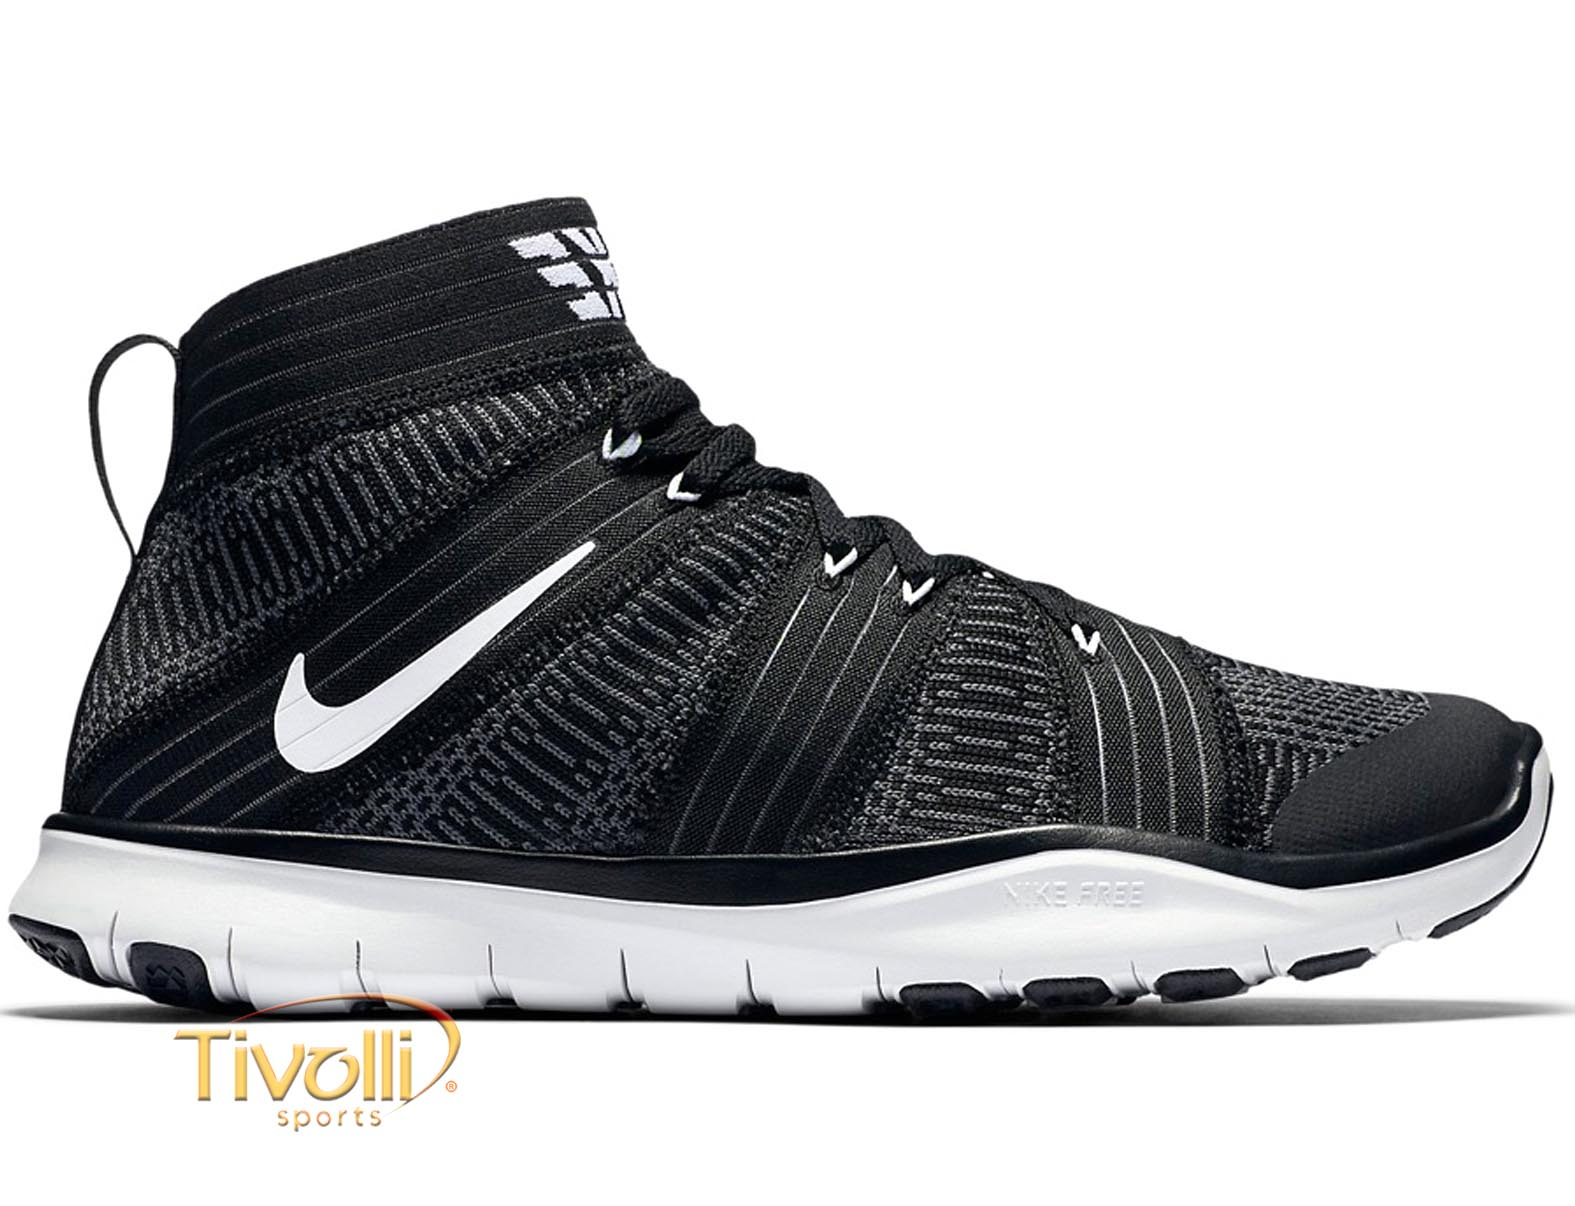 f2122af7f1b Tênis Nike Free Train Virtue